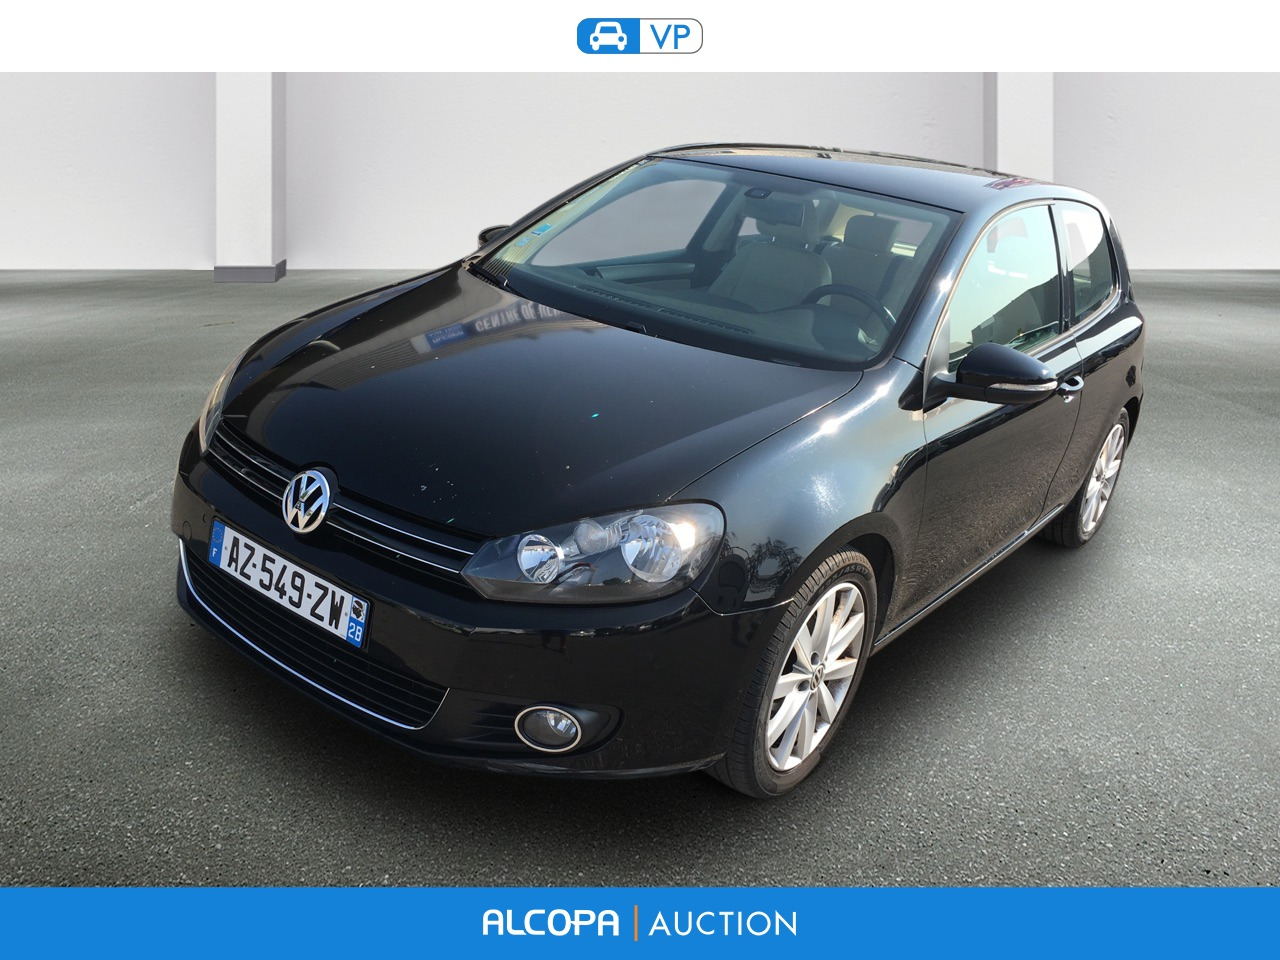 volkswagen golf golf 1 6 tdi 105 fap cr carat alcopa auction. Black Bedroom Furniture Sets. Home Design Ideas